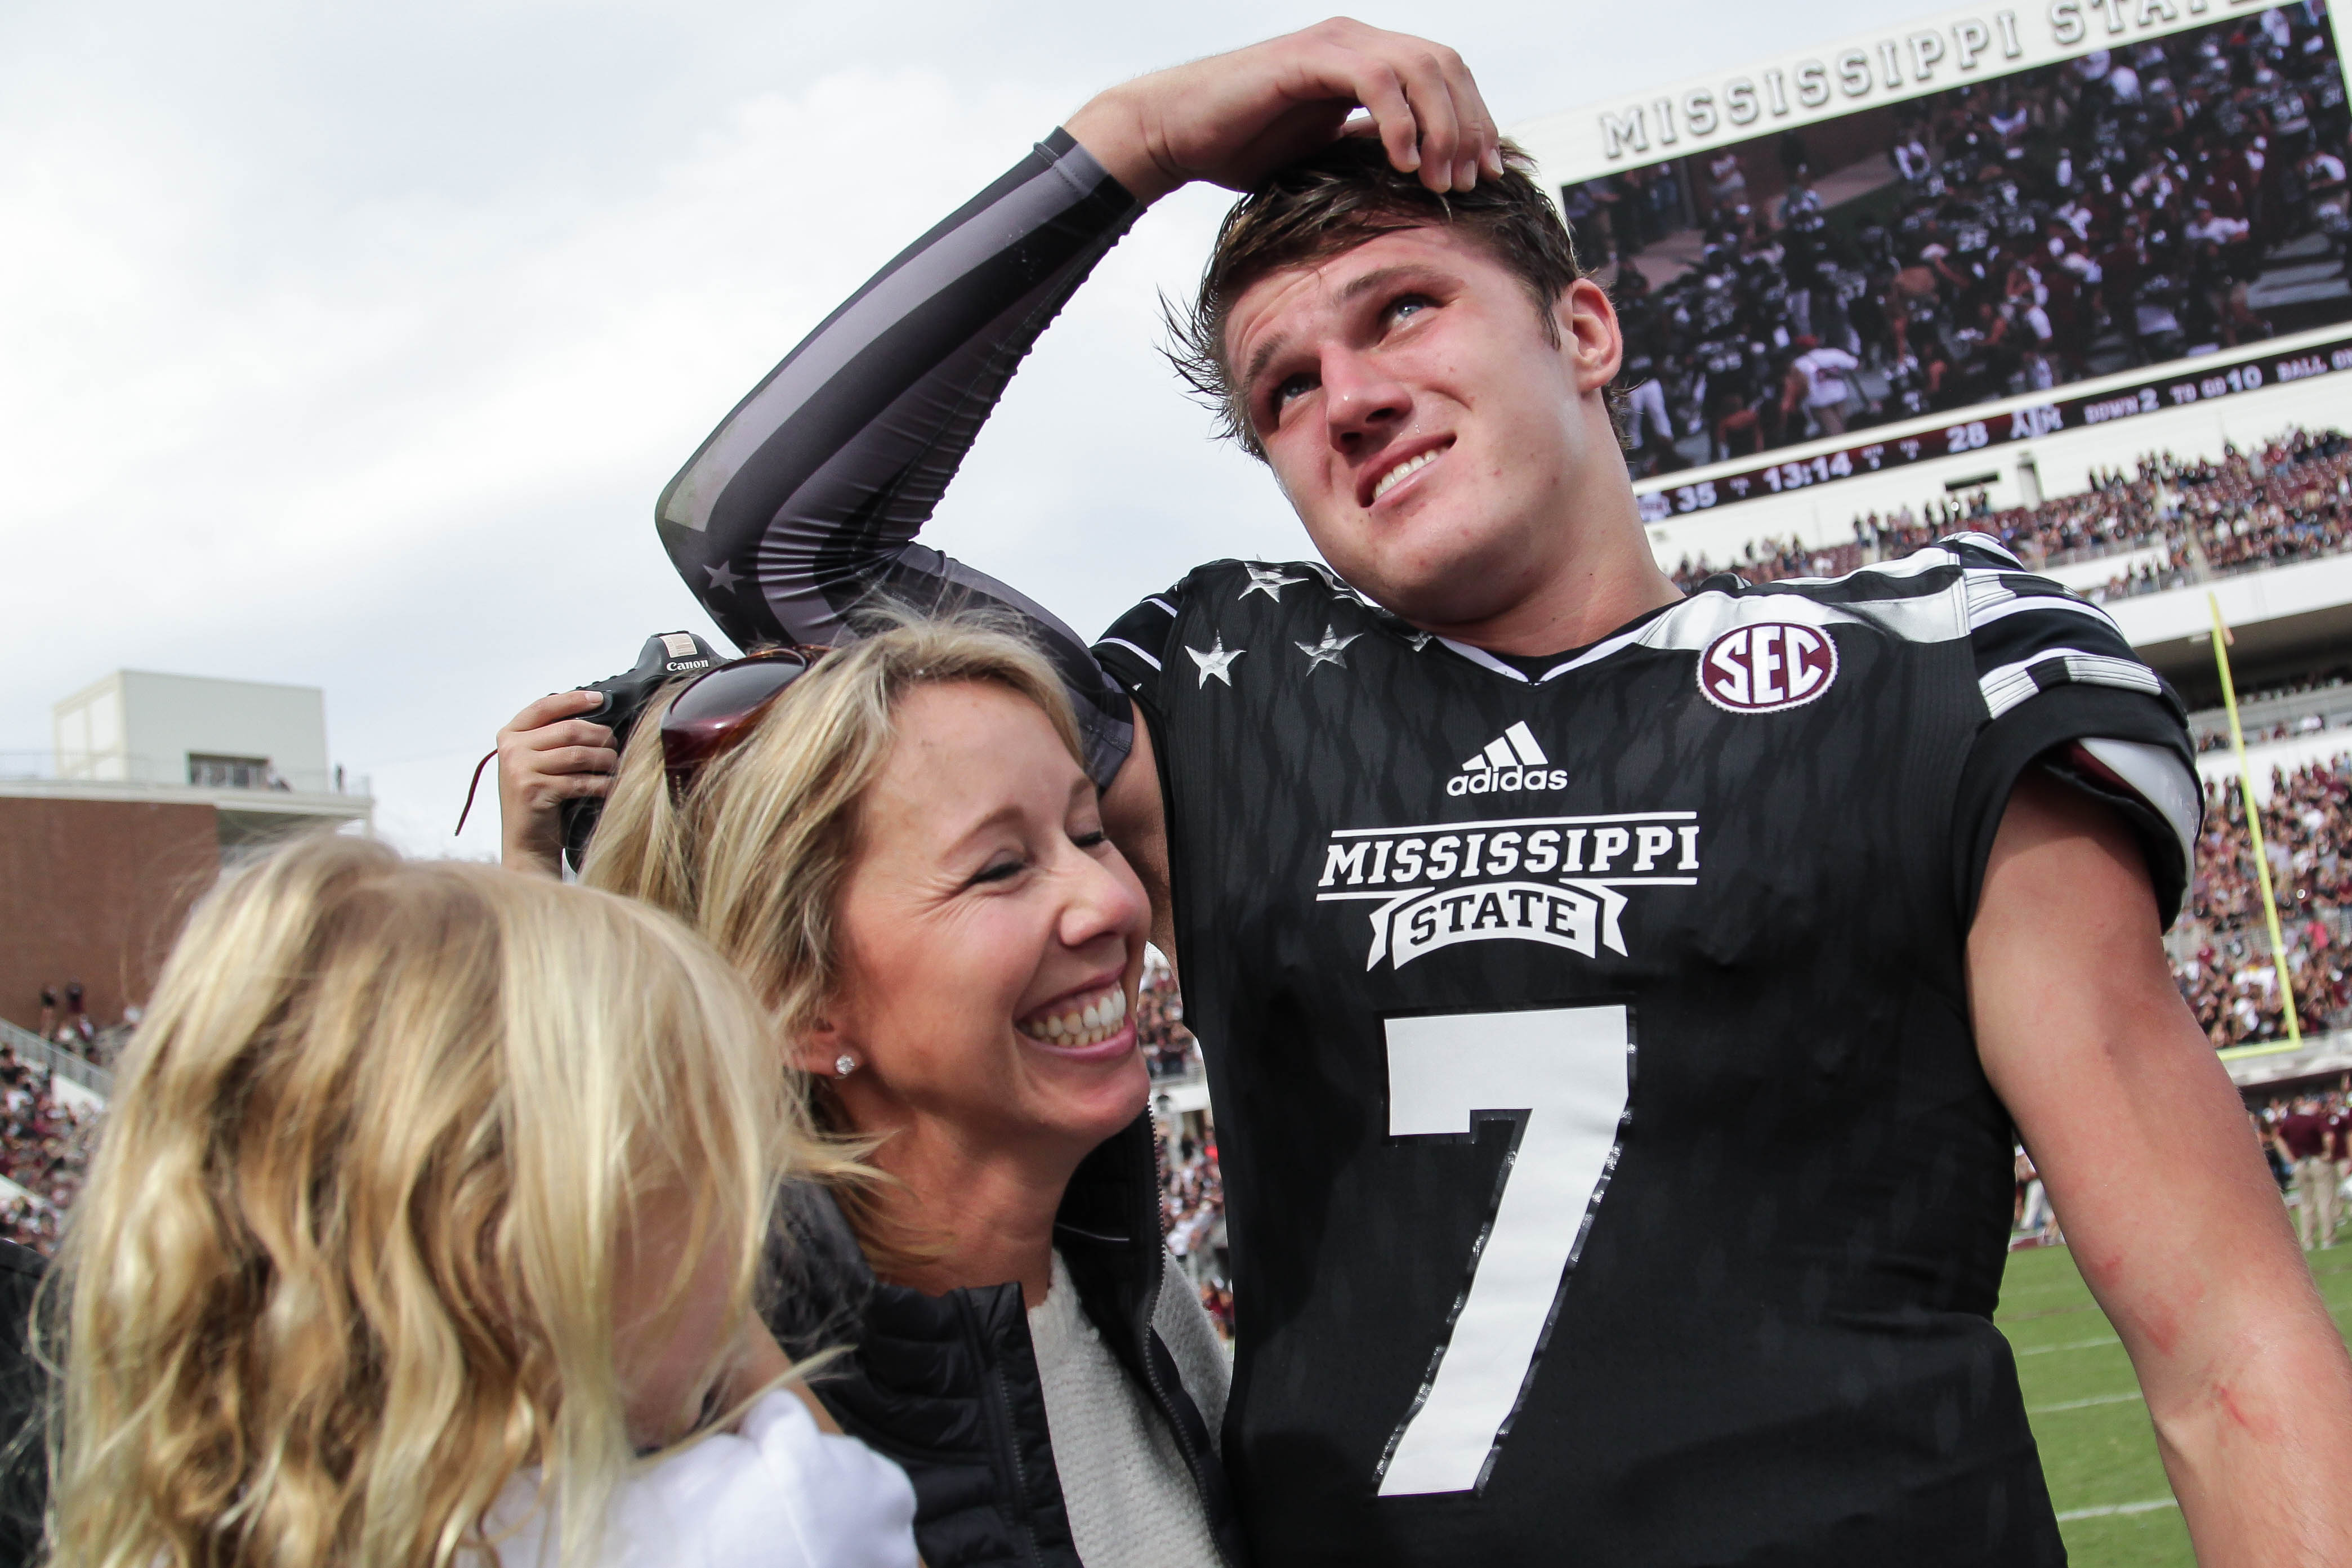 Megan Mullen, wife of Mississippi State coach Dan Mullen, celebrates with quarterback Nick Fitzgerald after defeating Texas A&M 35-28 in an NCAA college football game at Davis Wade Stadium at Scott Field in Starkville, Miss., Saturday, Nov. 5, 2016.  (Jam